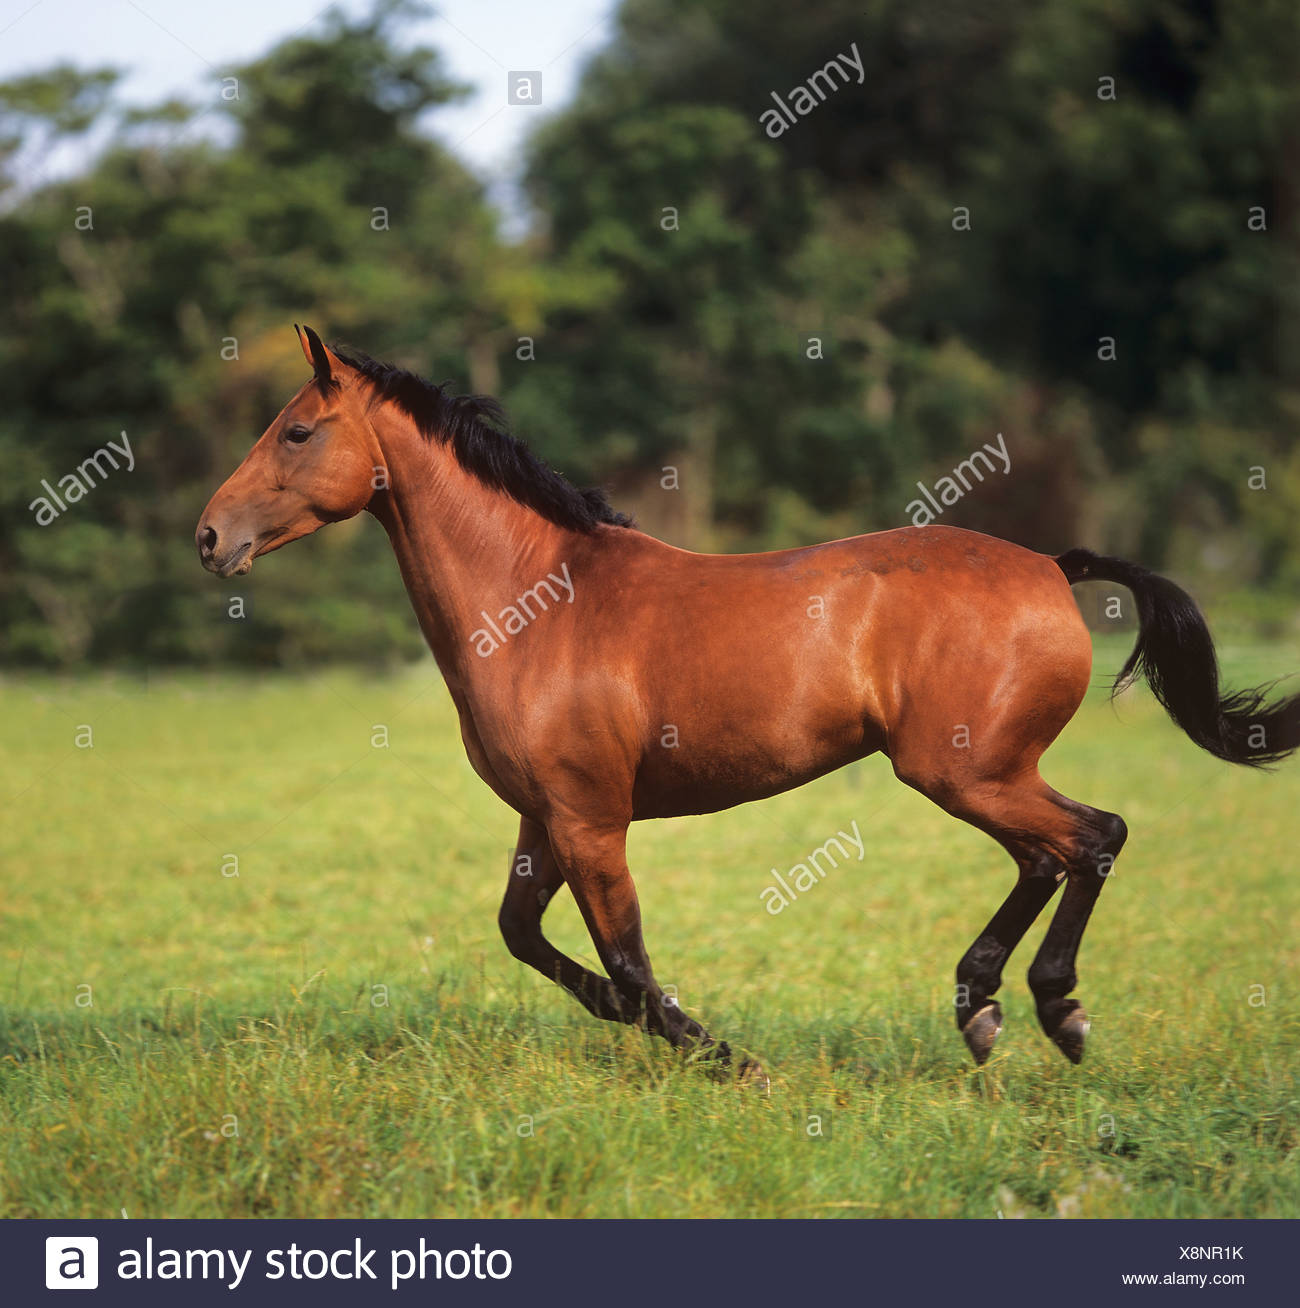 Dutch endotherm horse galloping on meadow - Stock Image